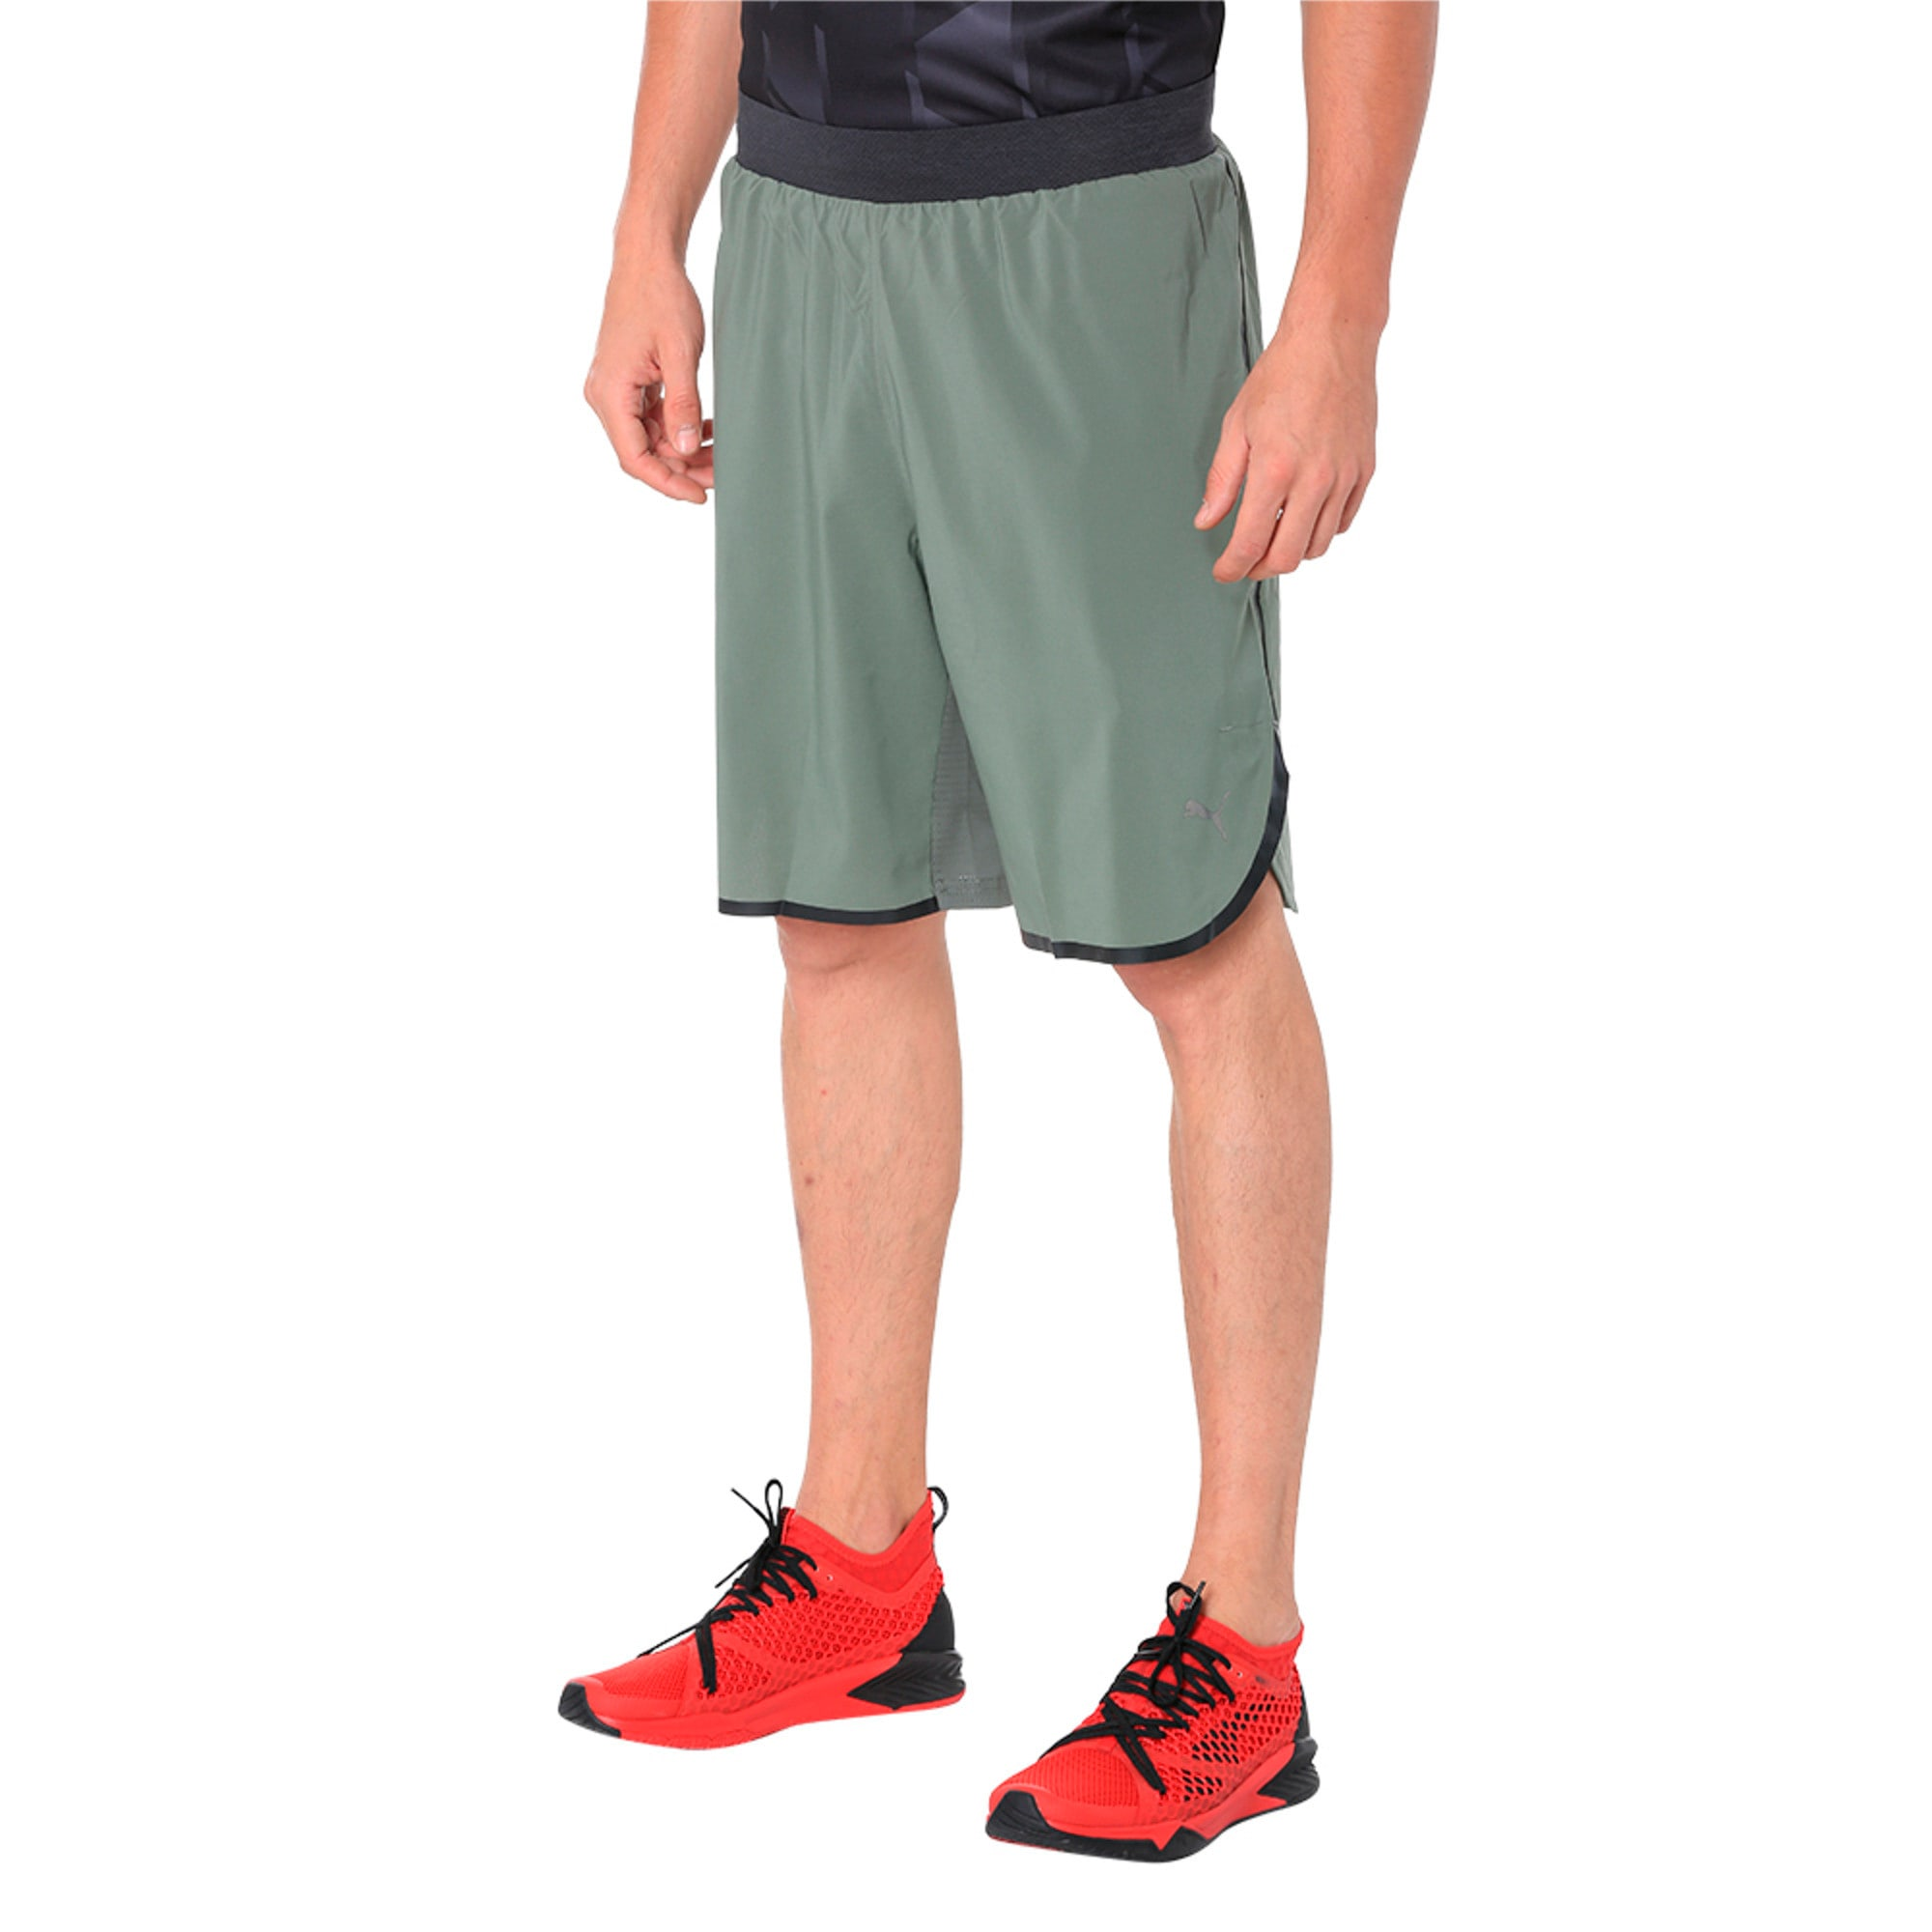 Thumbnail 2 of Energy Laser Shorts, Castor Gray-Dark GrayHeather, medium-IND